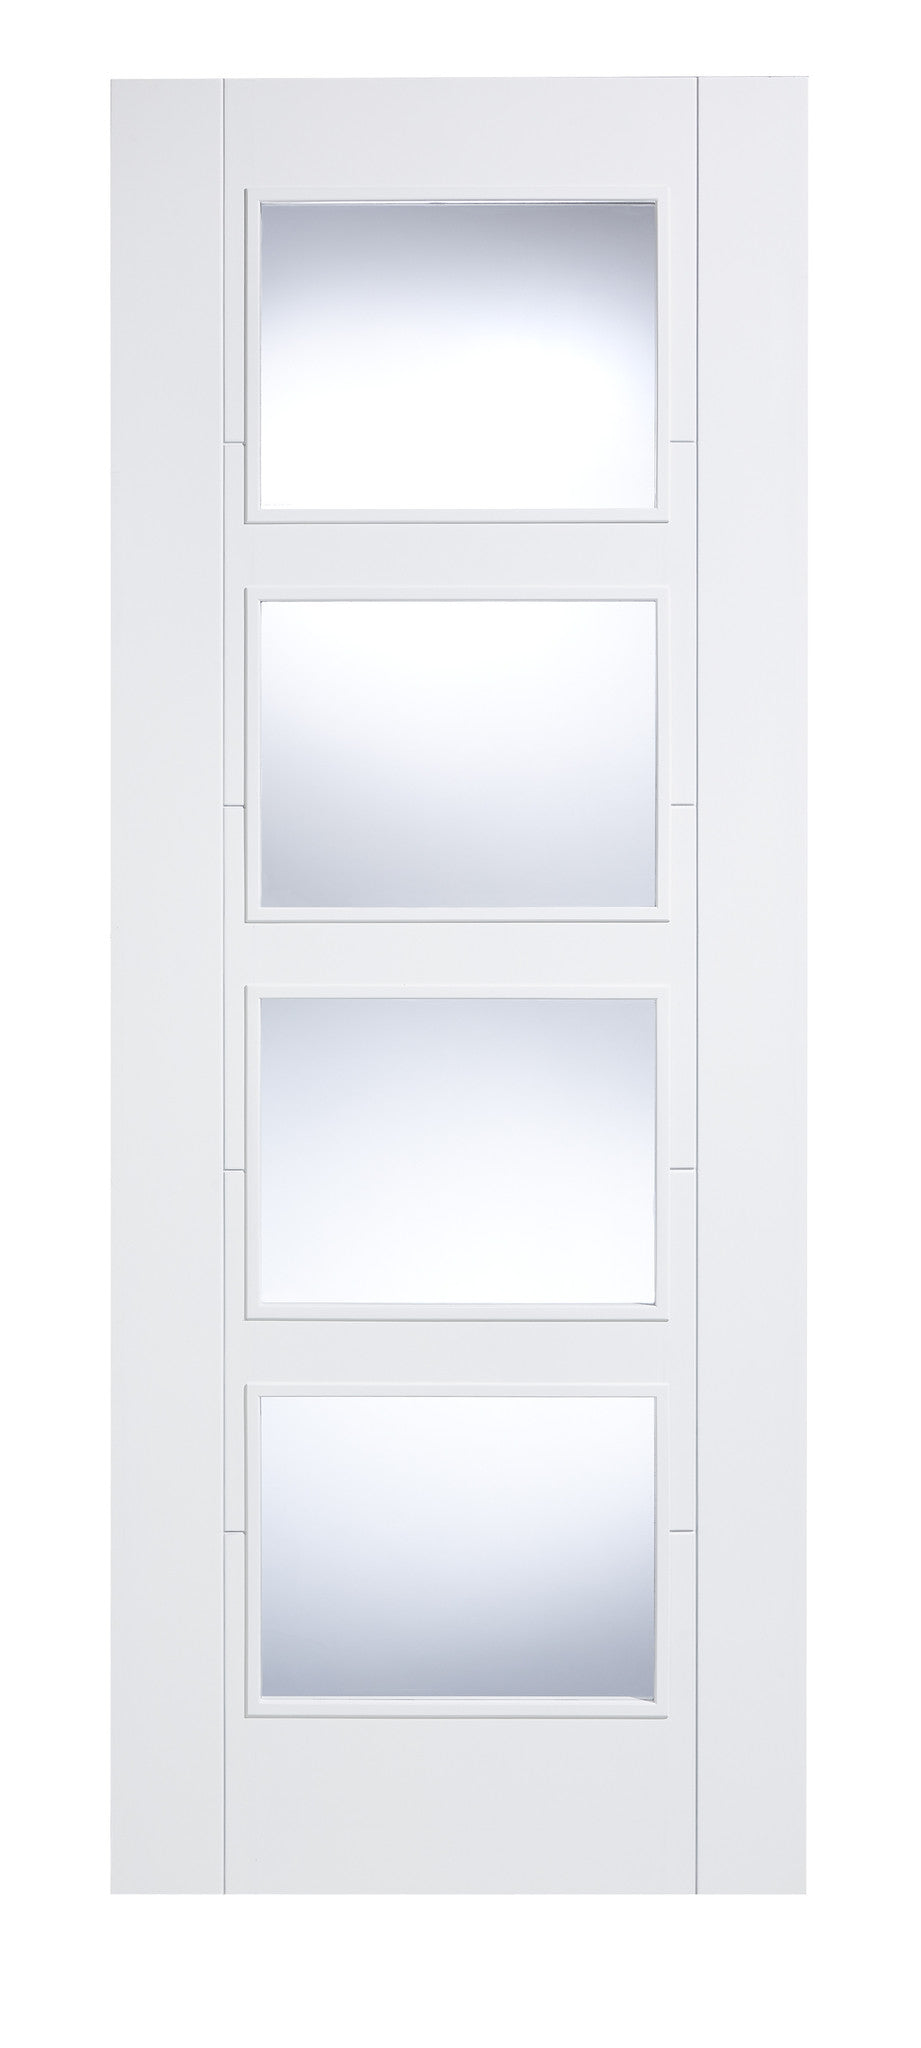 Internal Vancouver White 4 Light Clear Glass Door - MODA DOORS - 1  sc 1 st  MODA Doors & LPD Internal Vancouver White 4 Light Clear Glass Door